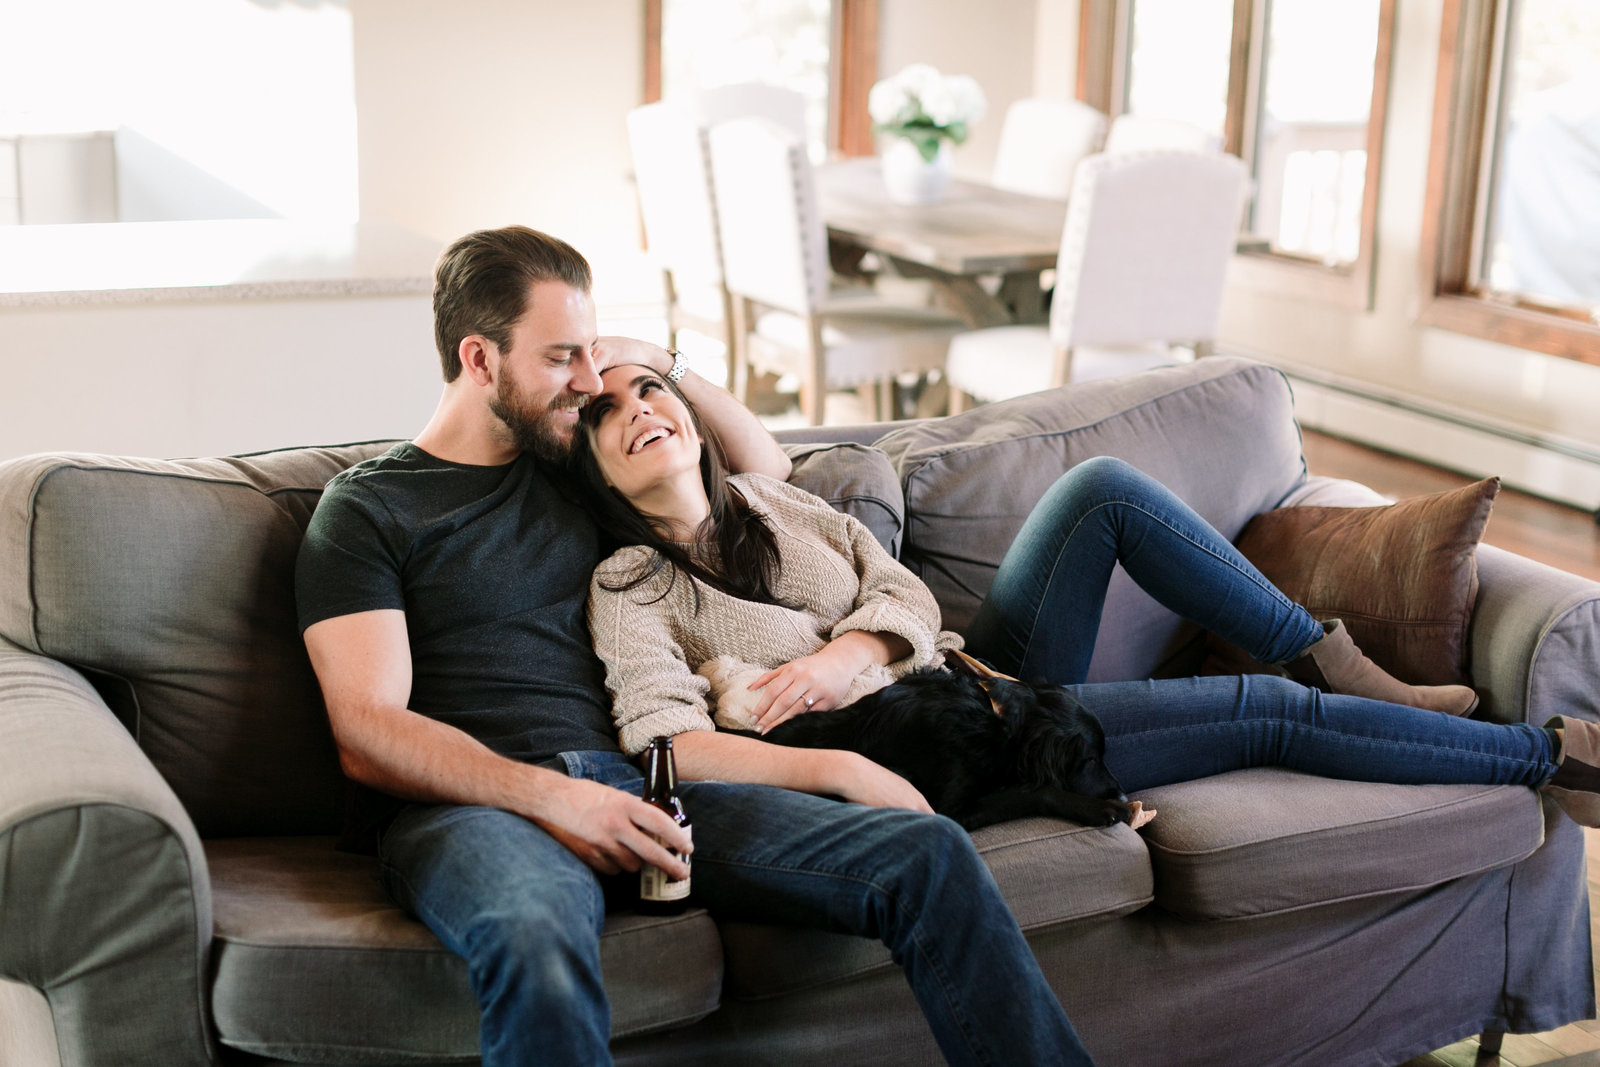 in-home-lifestyle-engagement-photography-rhode-island0304